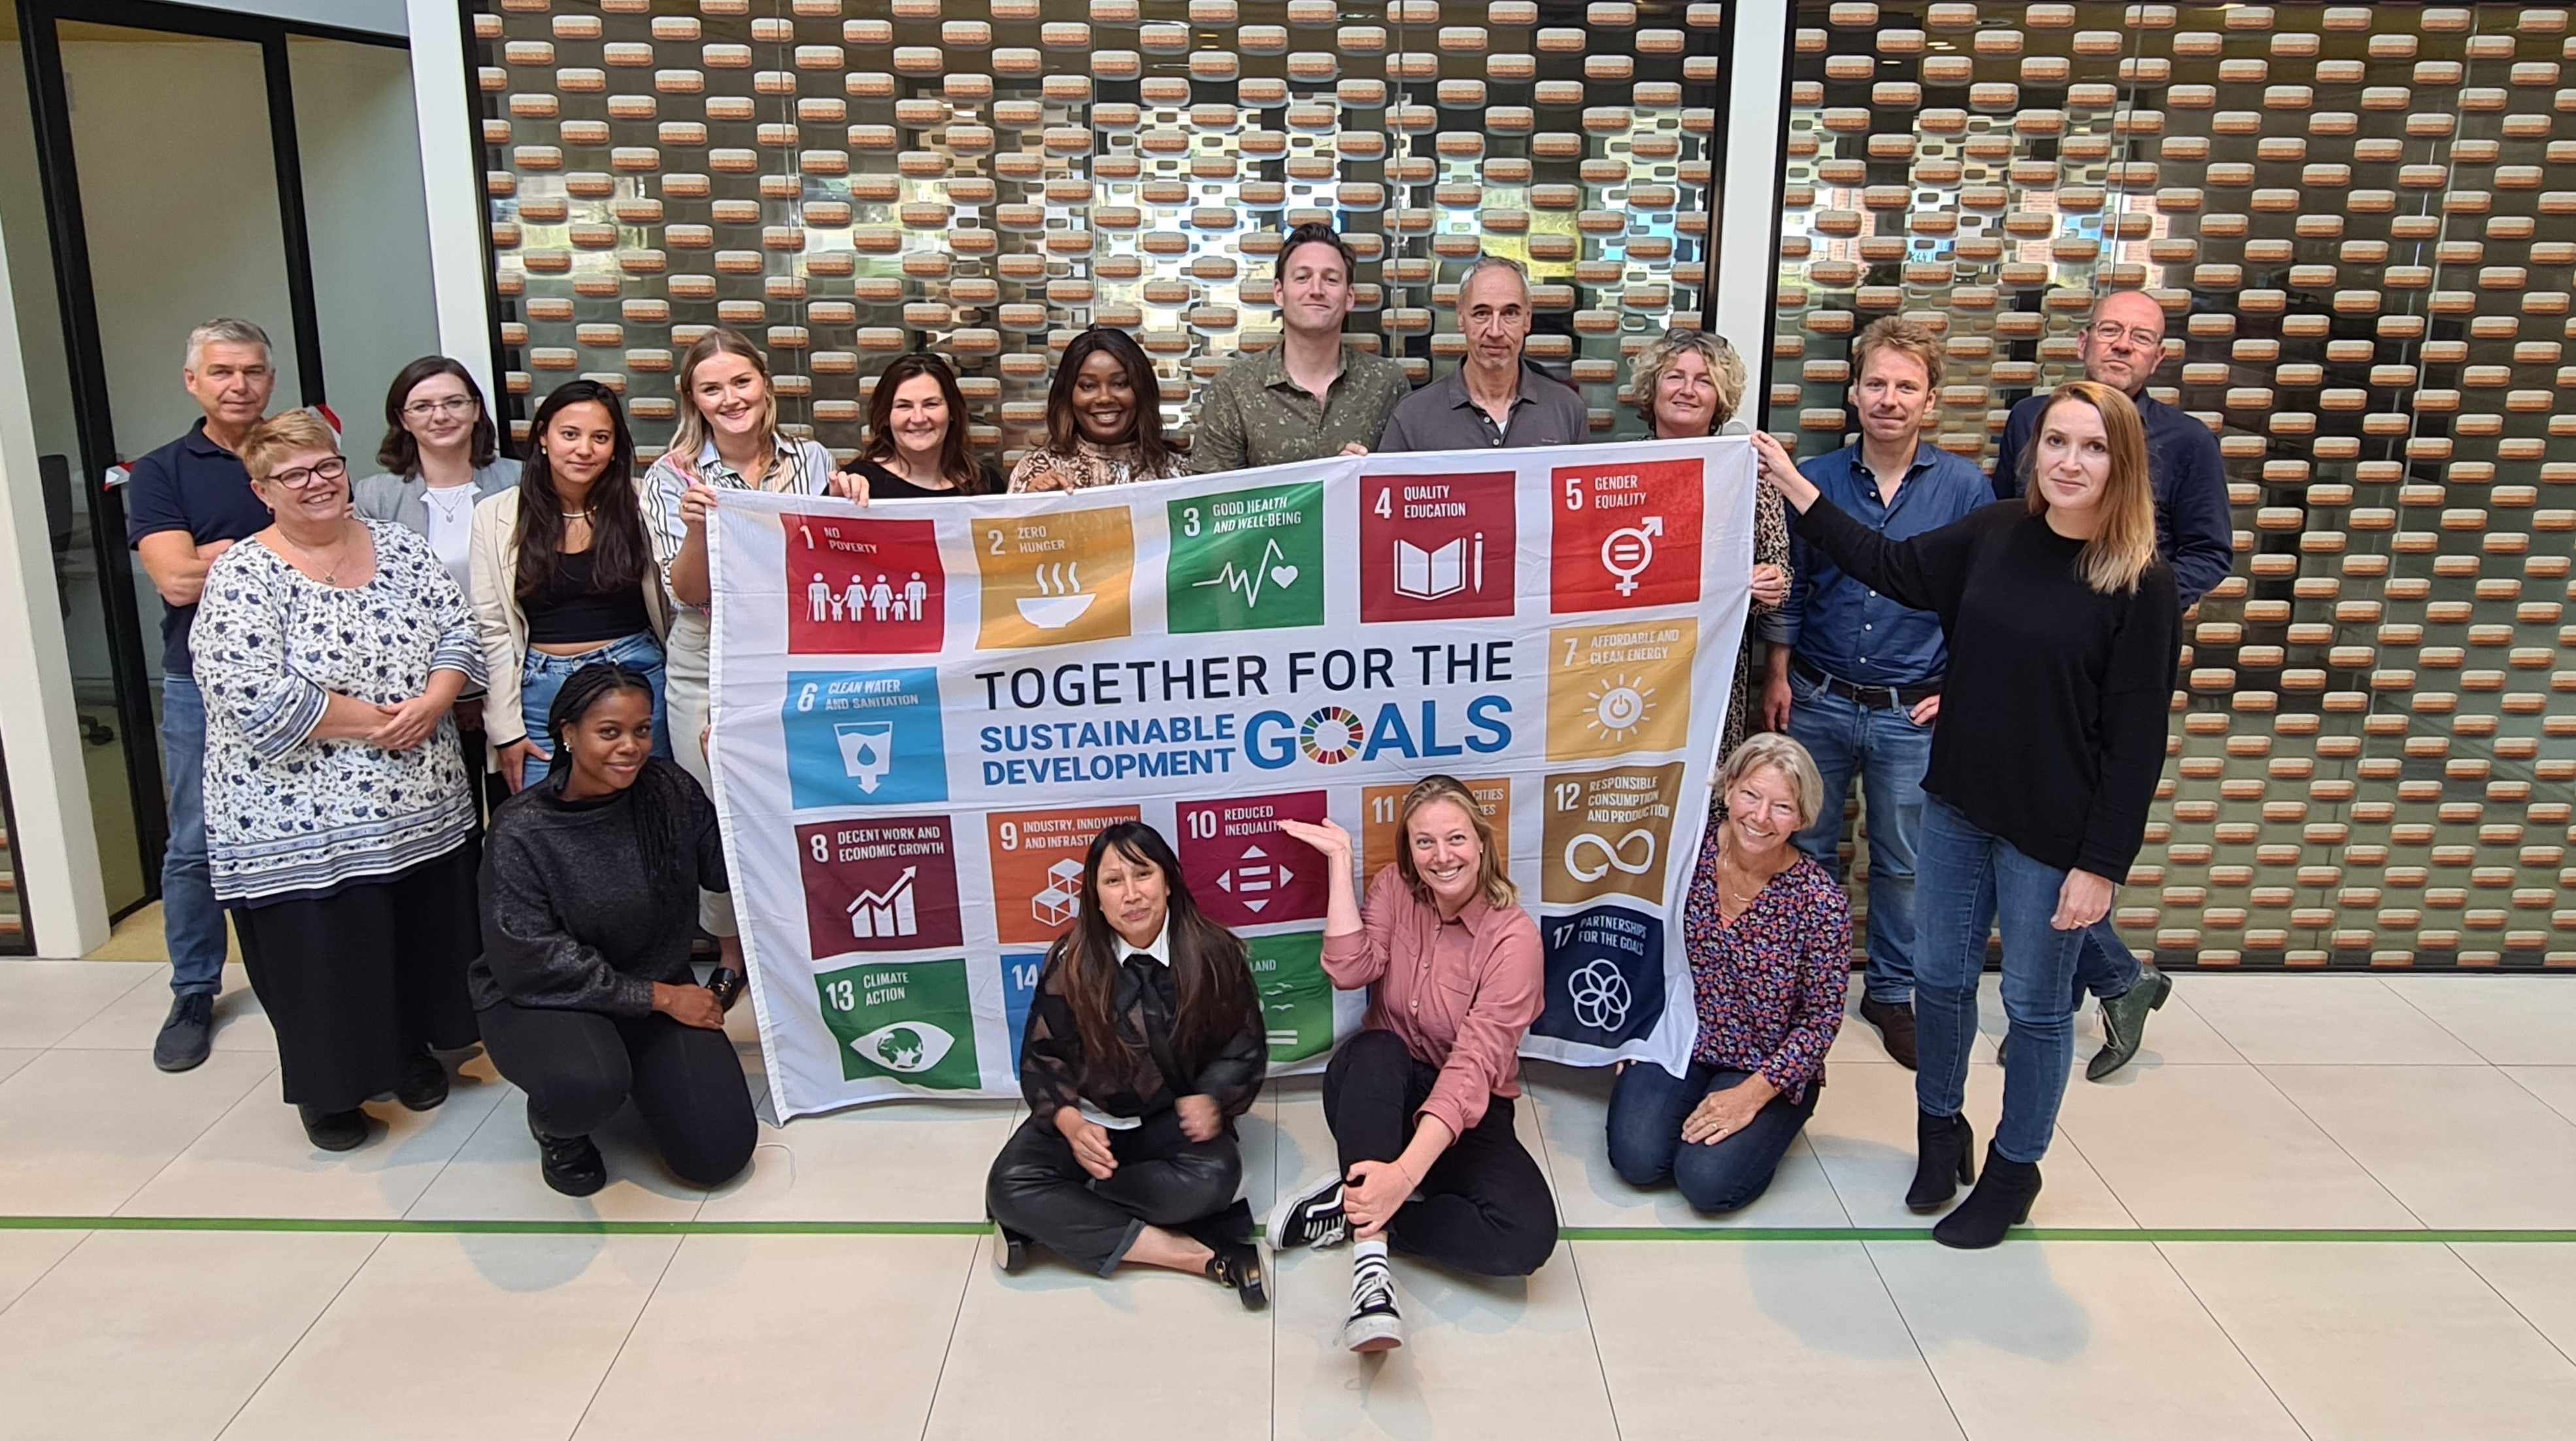 Together for the SDGs on SDG Action Day